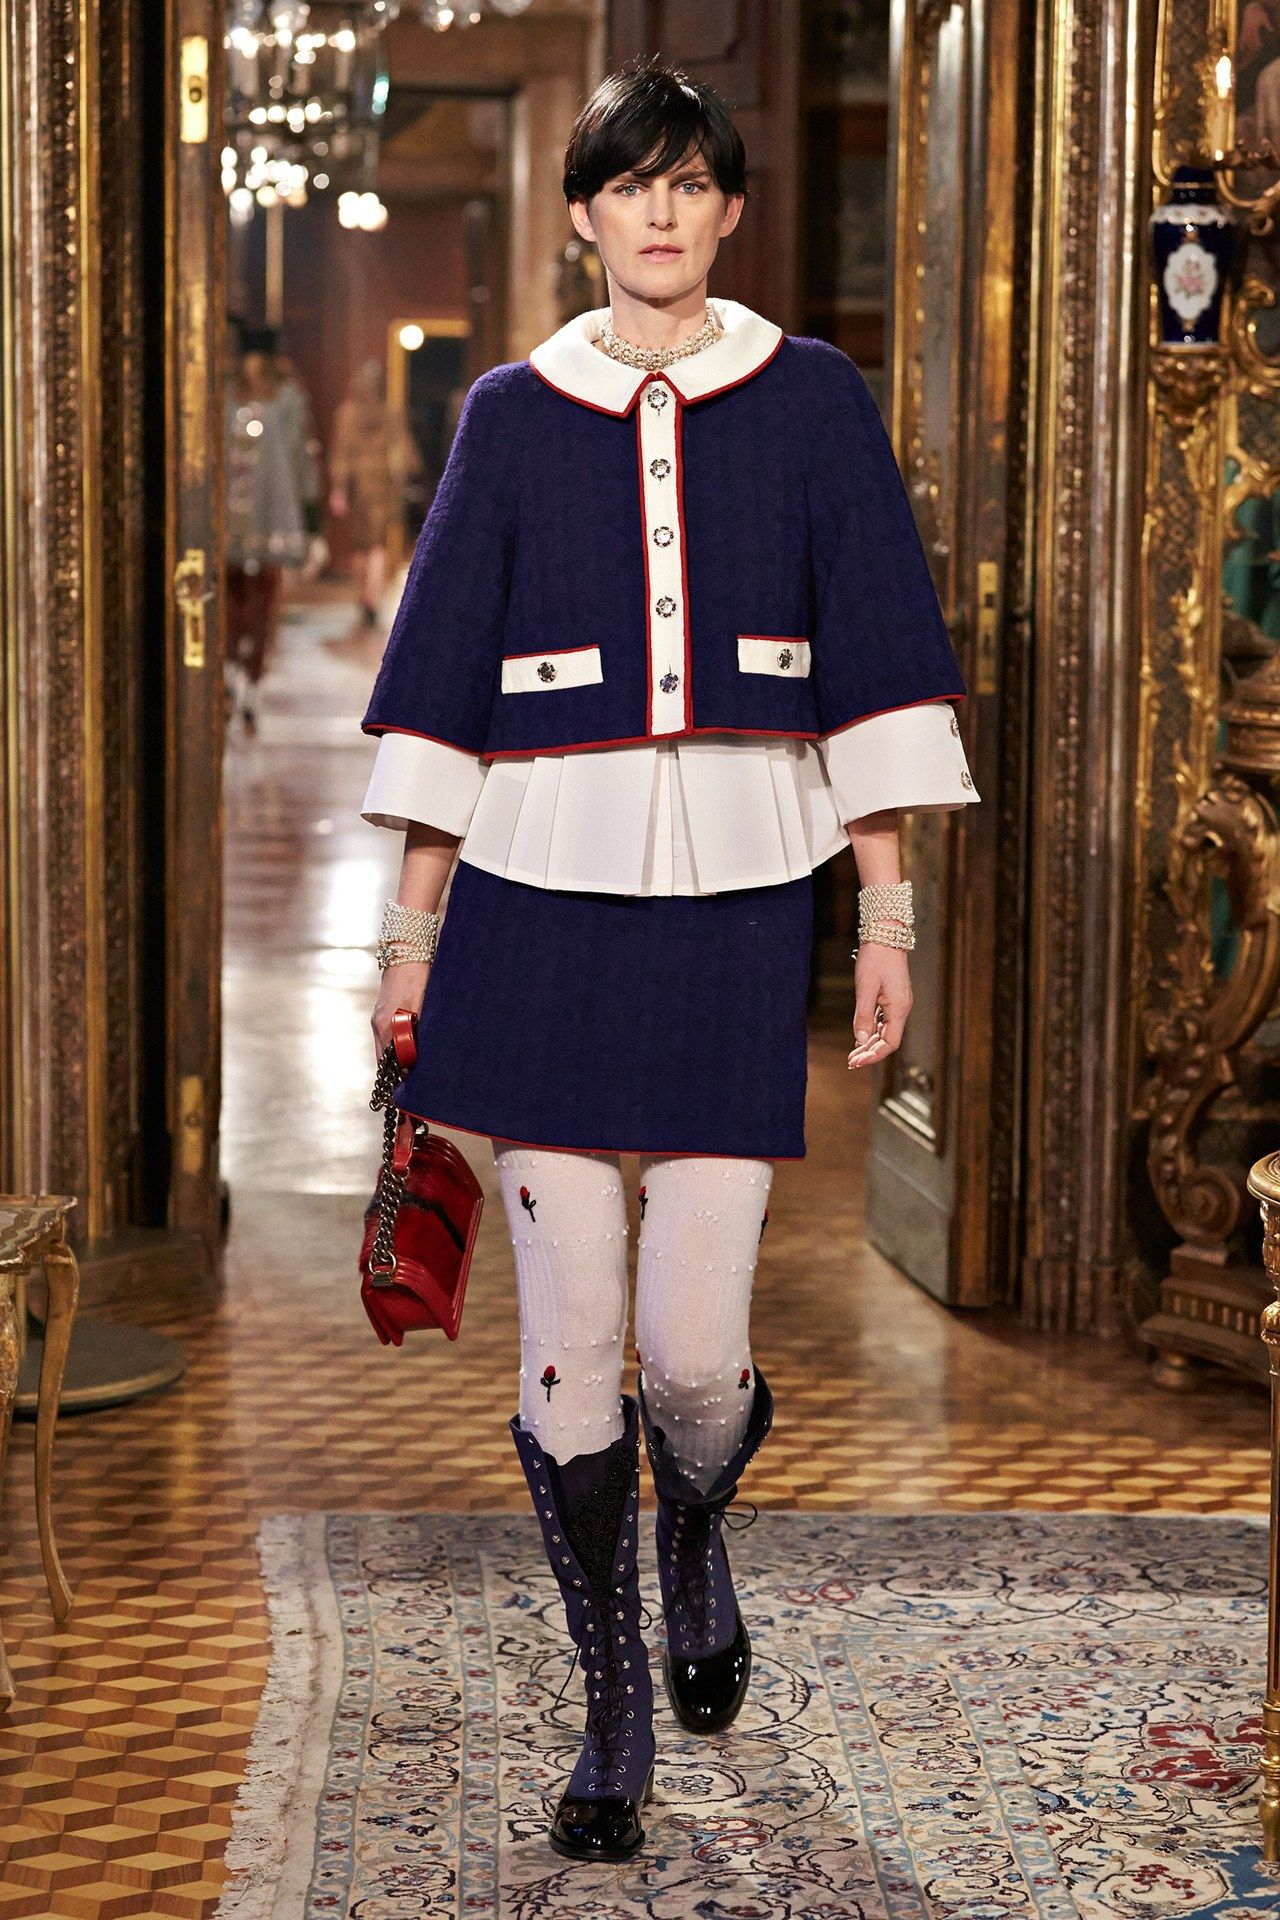 Chanel, pre-autumn/winter 2015 collection